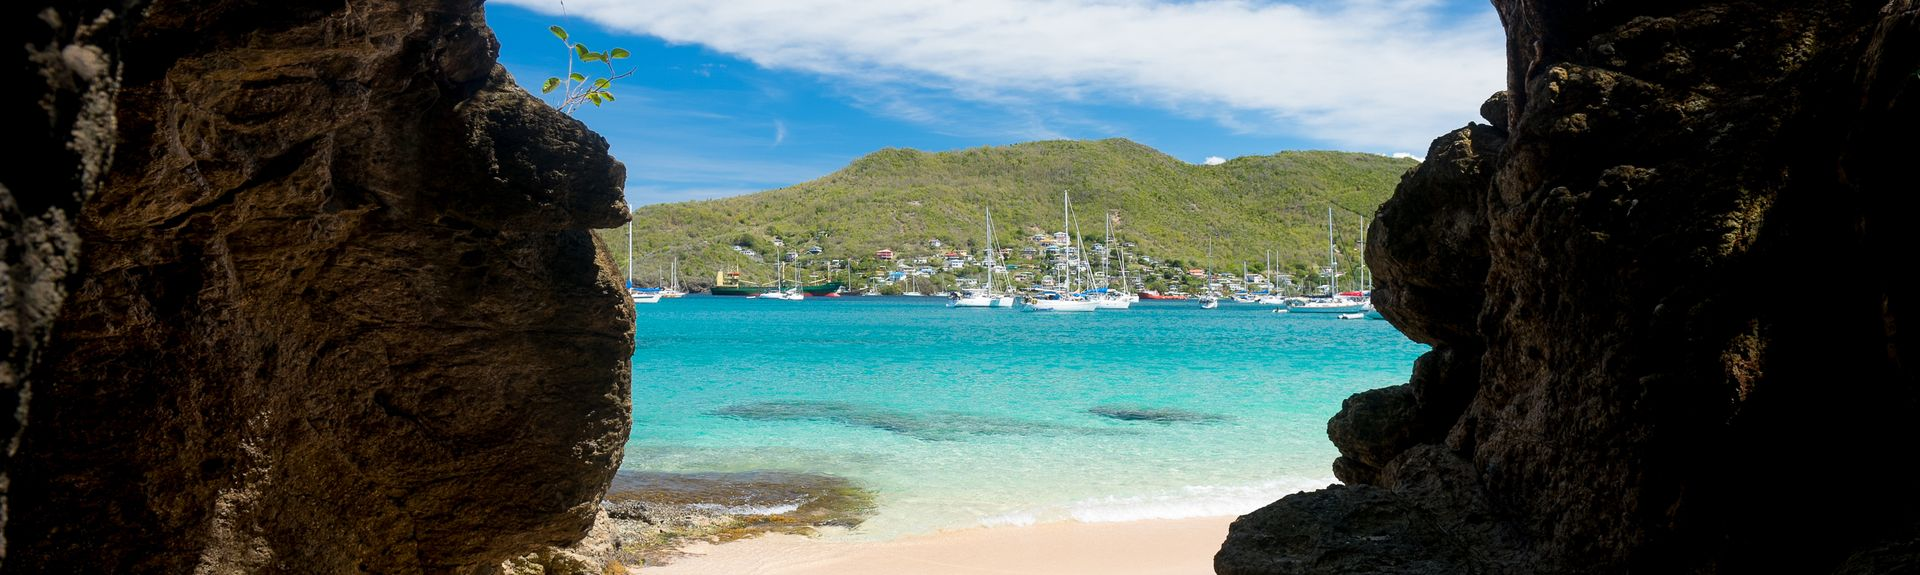 Hamilton, Port Elizabeth, Saint Vincent and the Grenadines